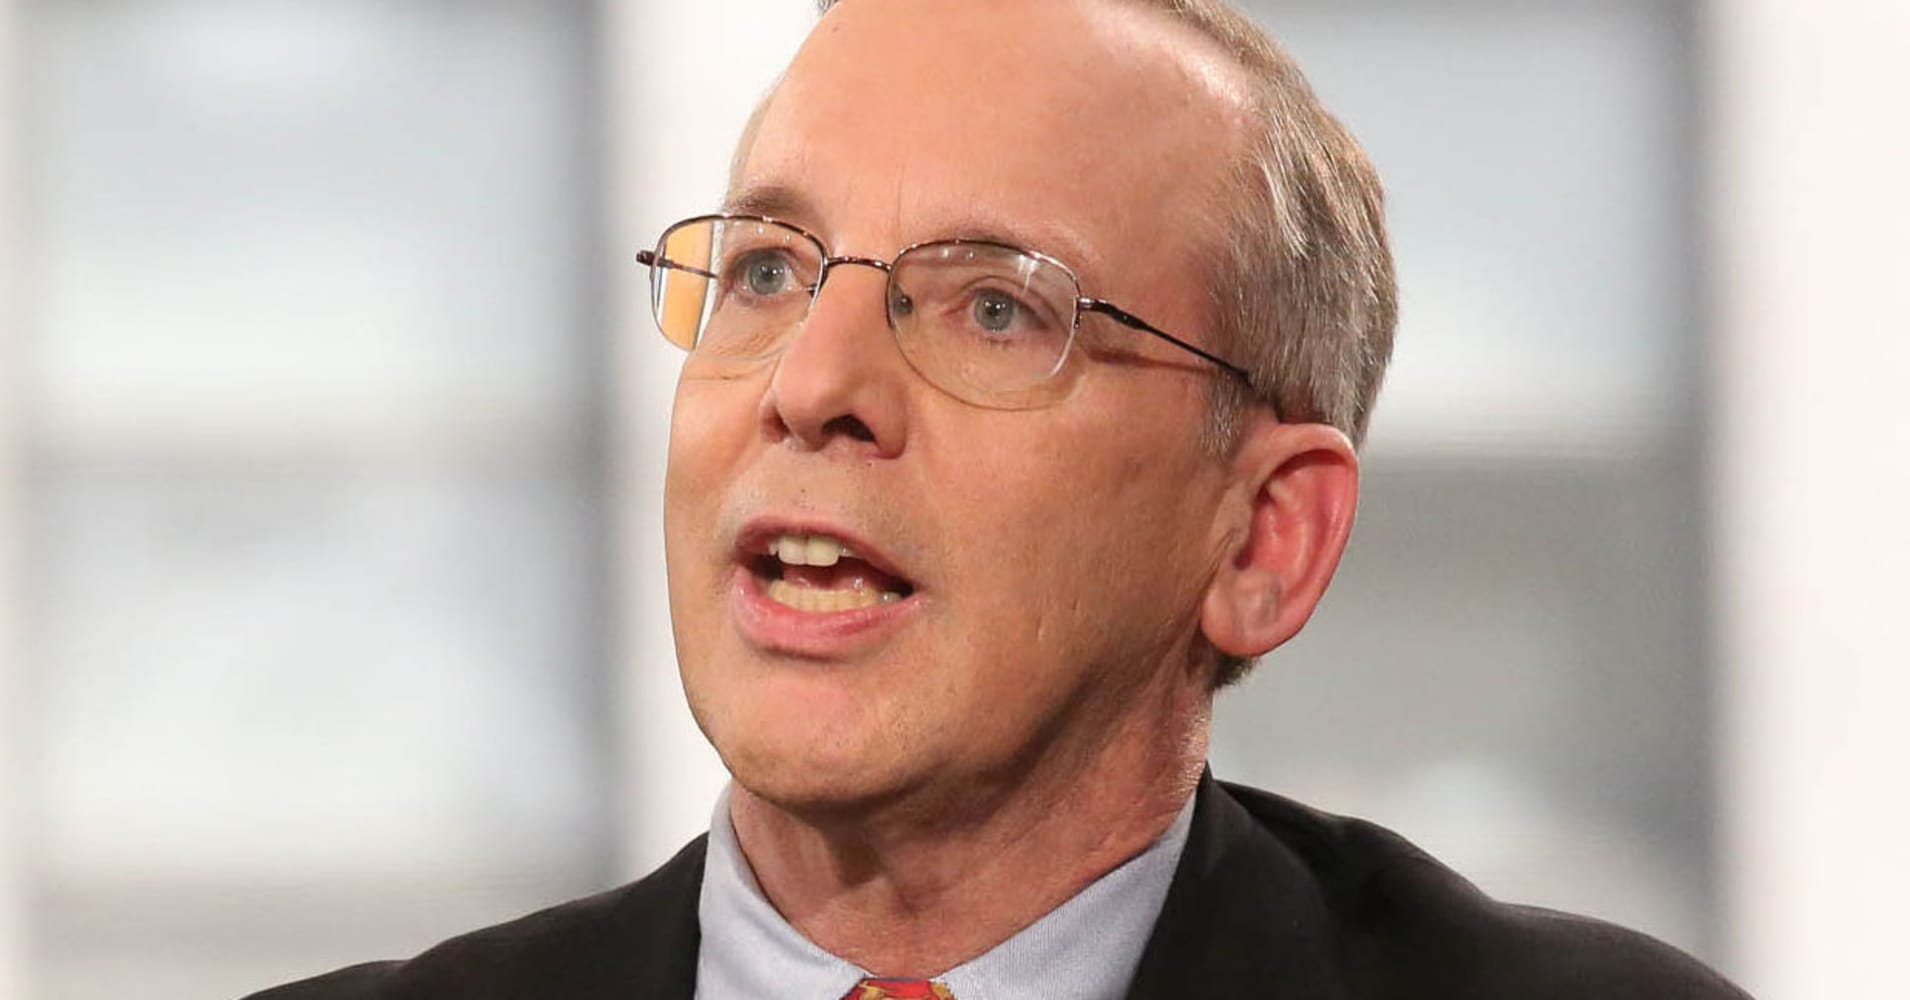 Fed's Dudley: We want to make monetary policy 'less accommodative'